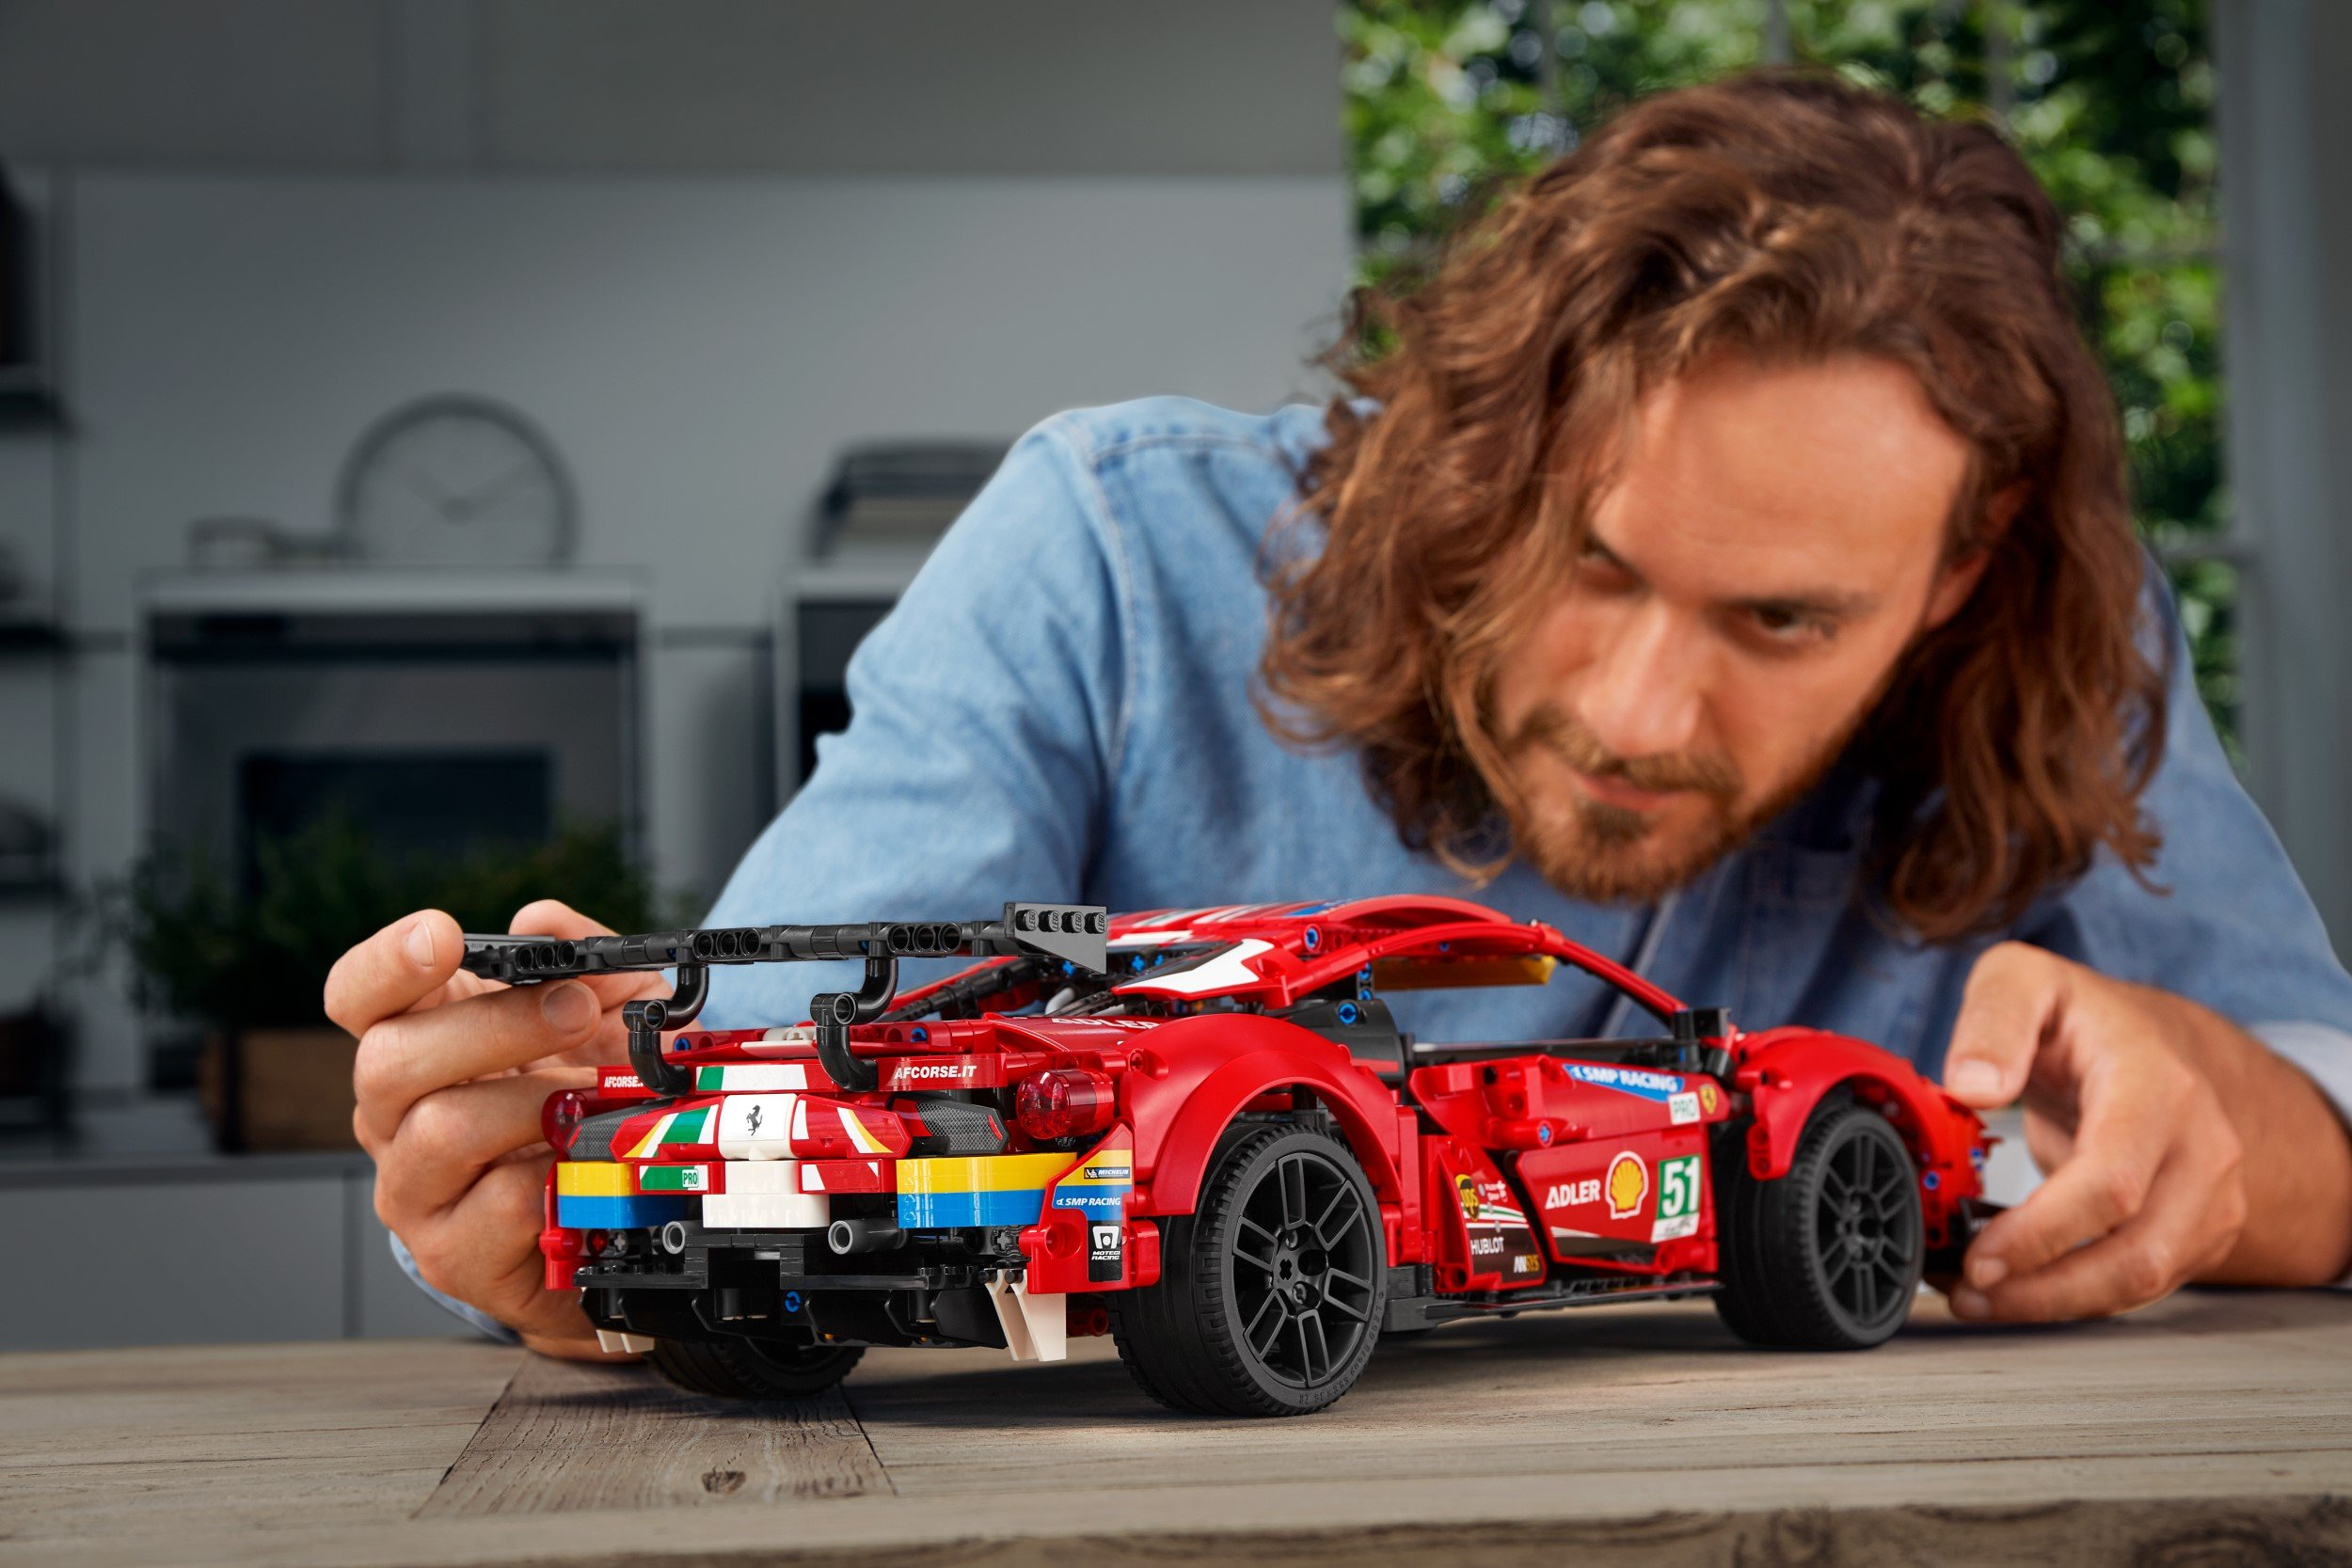 The Ferrari 488 GTE LEGO replica captures the ferocious look of the original 22